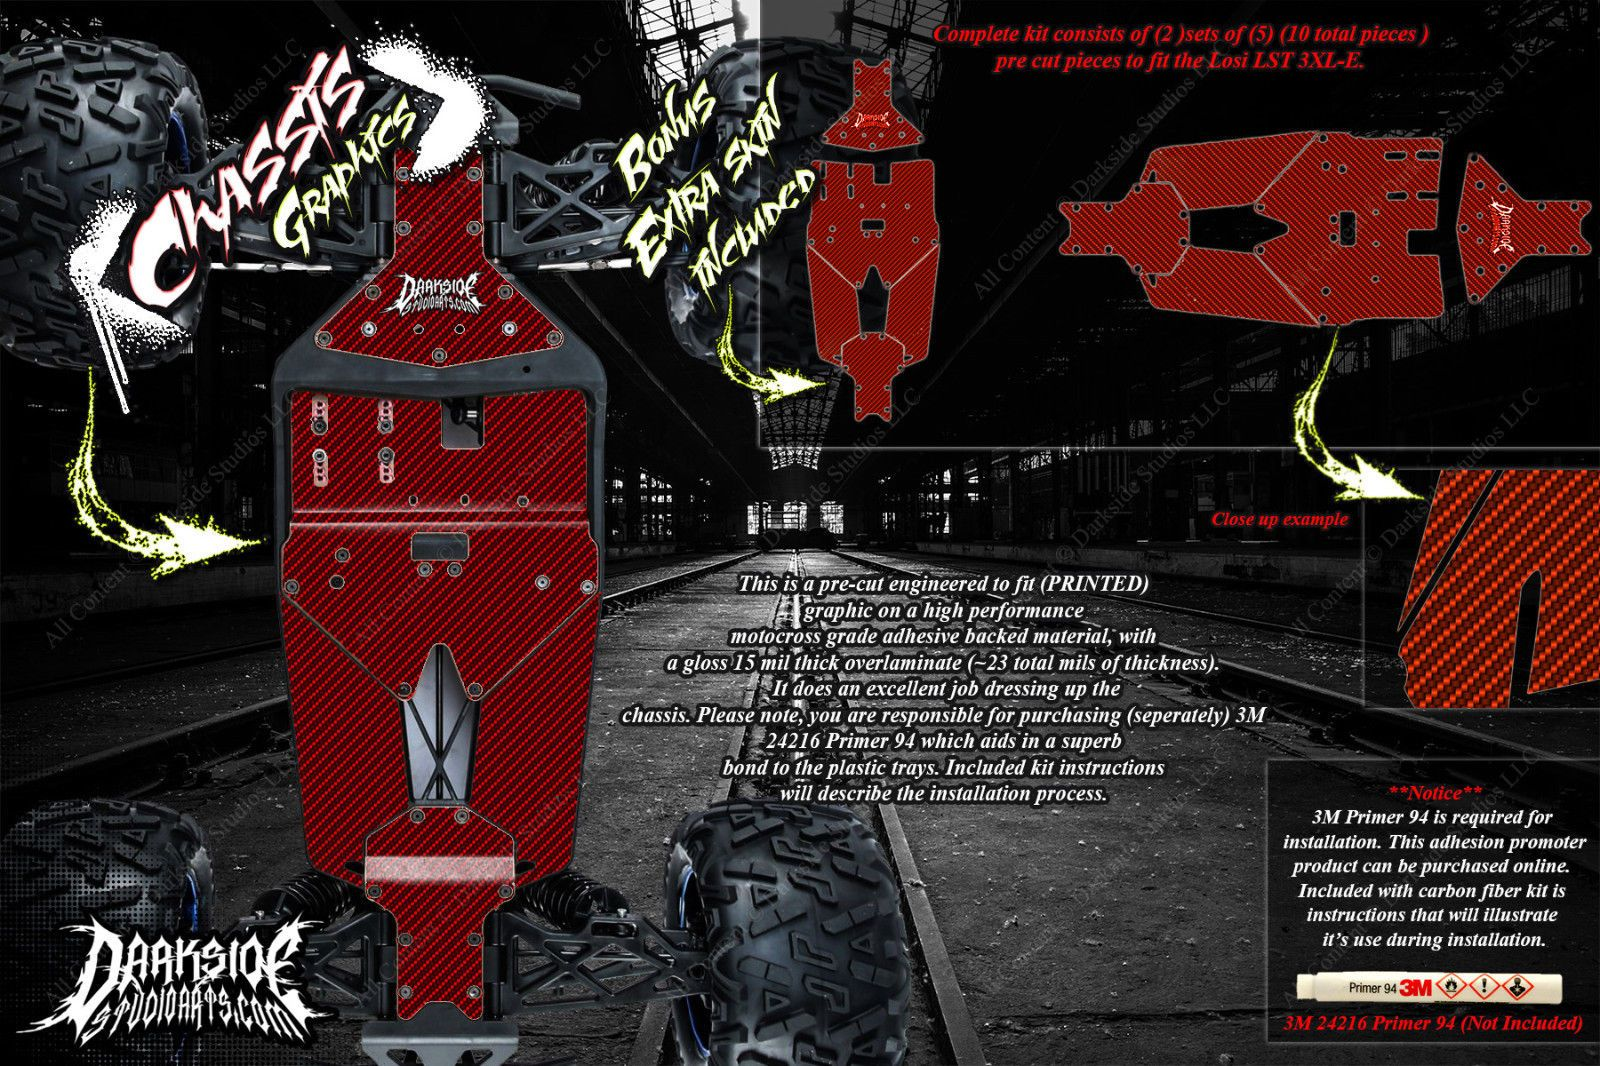 LOSI LST 3XL-E CARBON FIBER CHASSIS SKID PLATE WRAP DECAL KIT HOP UP SET RED